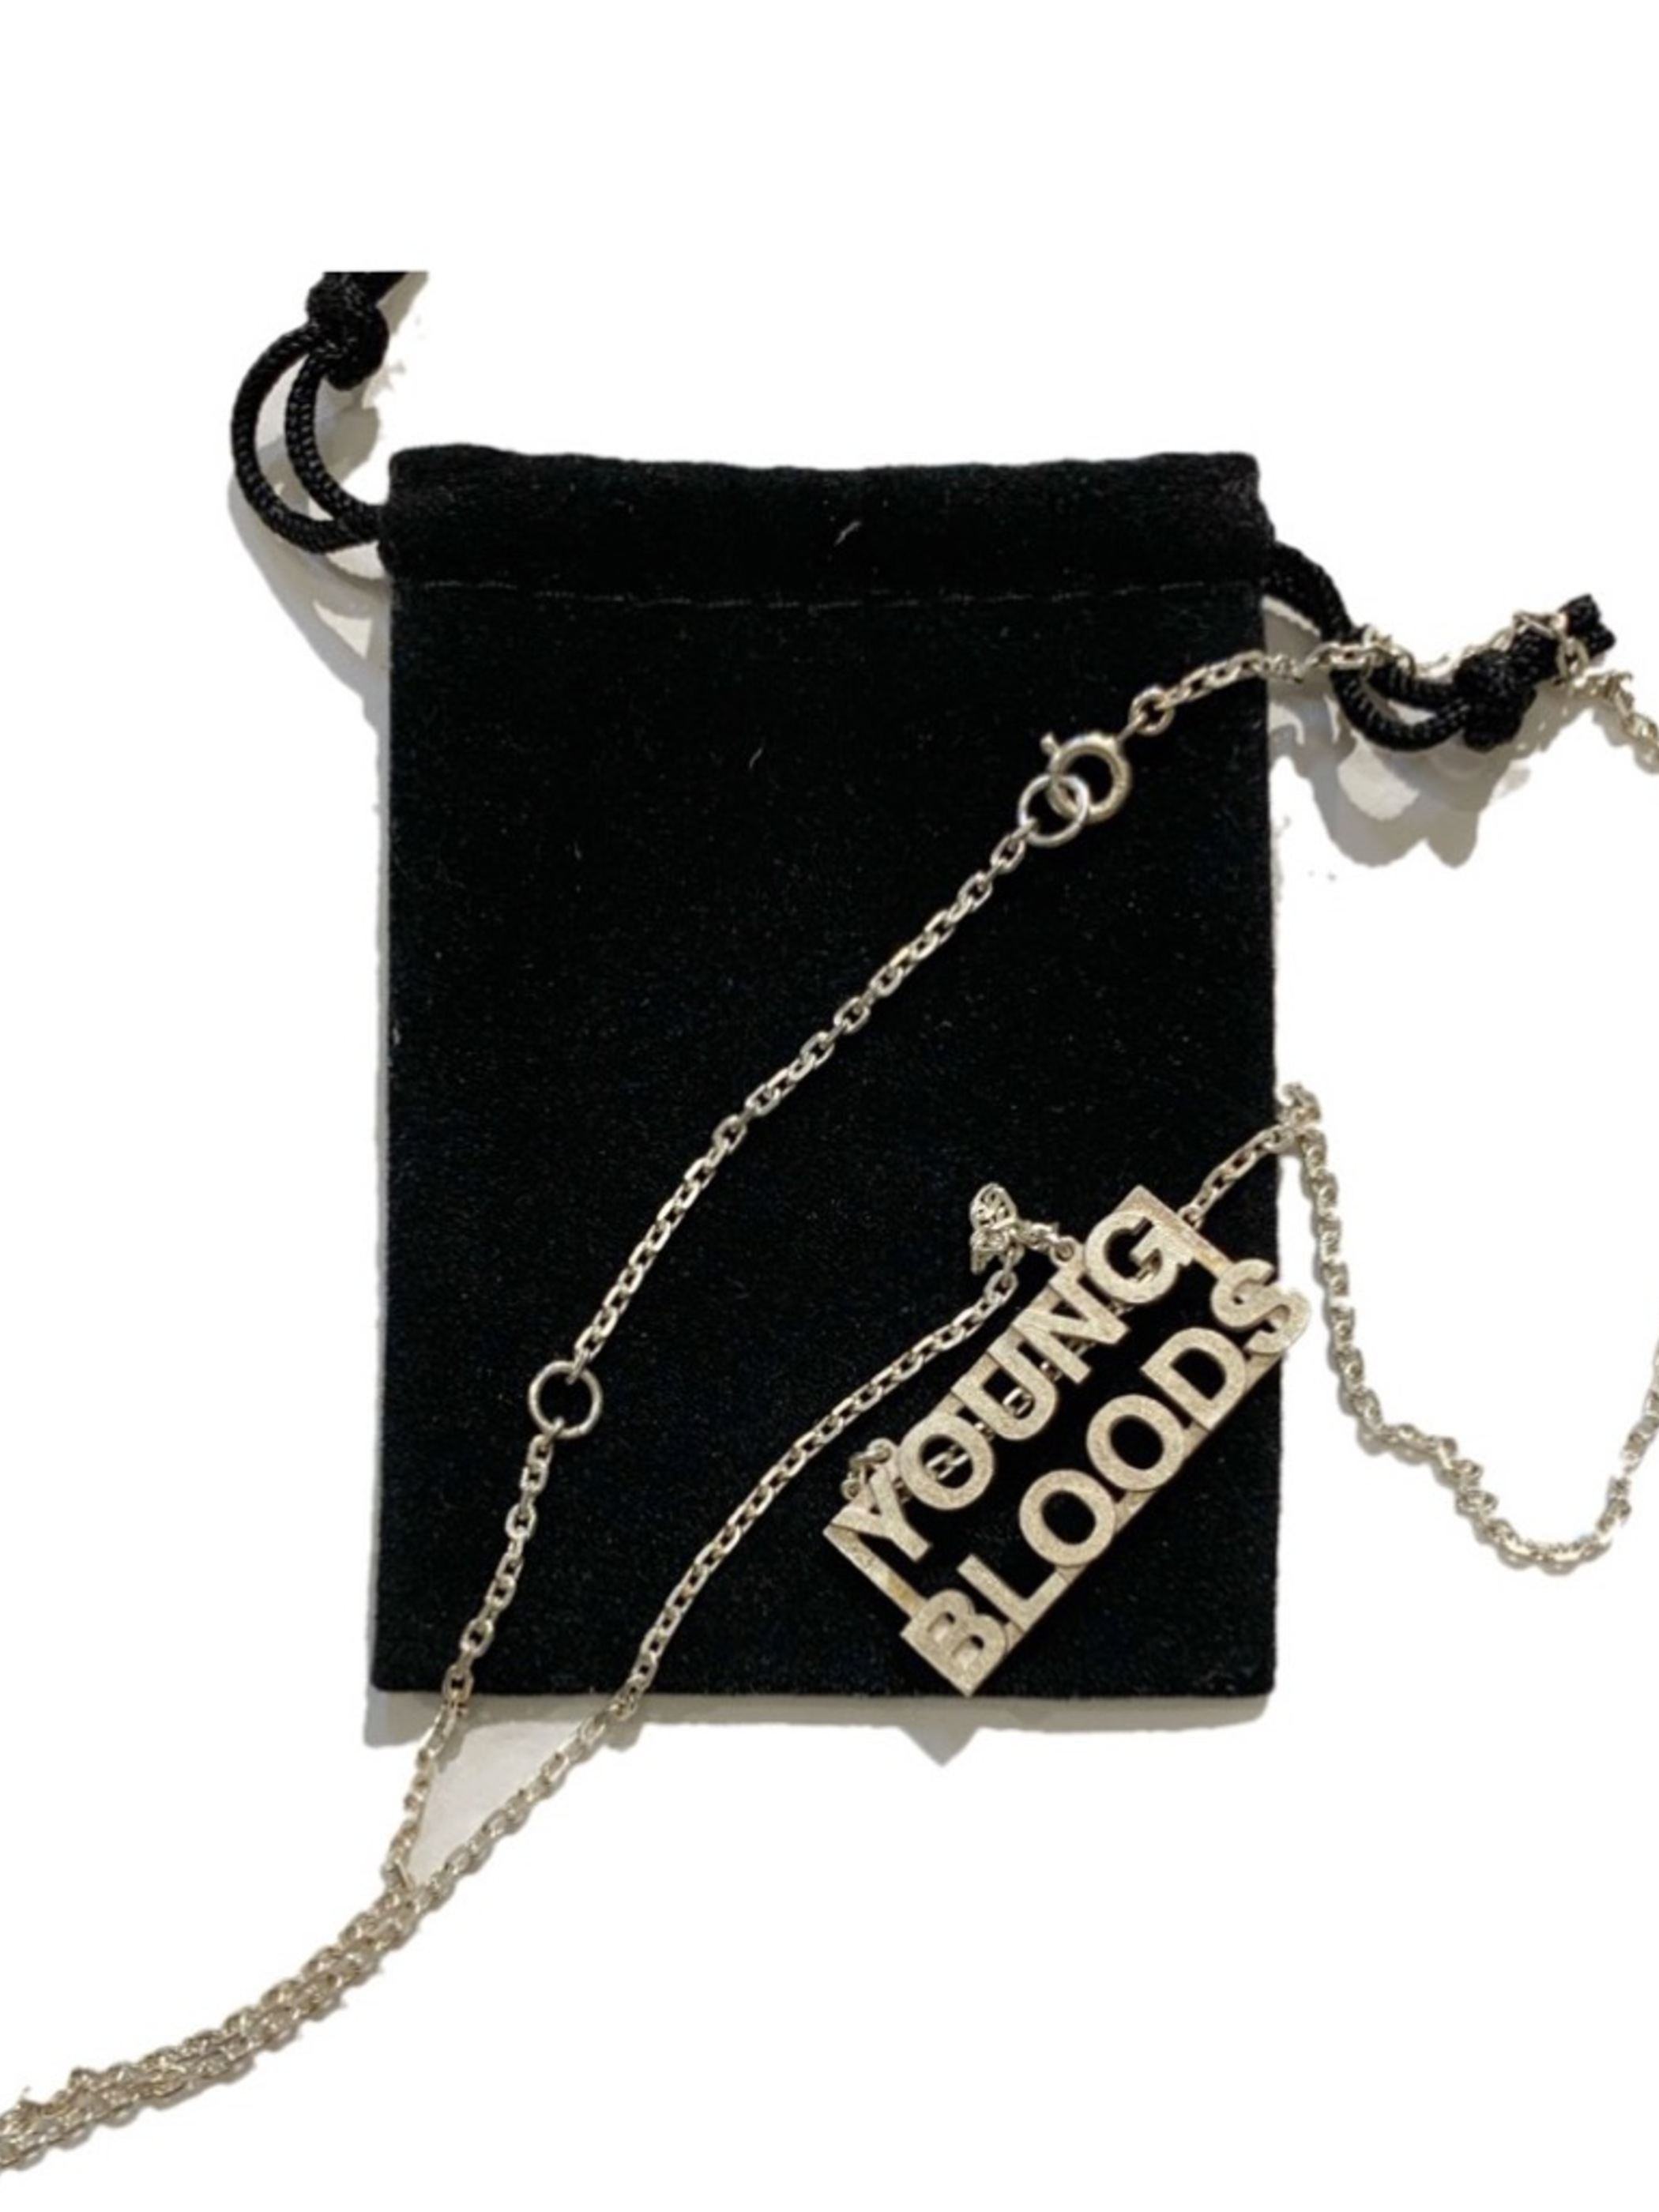 YUNGBLOODS original necklace